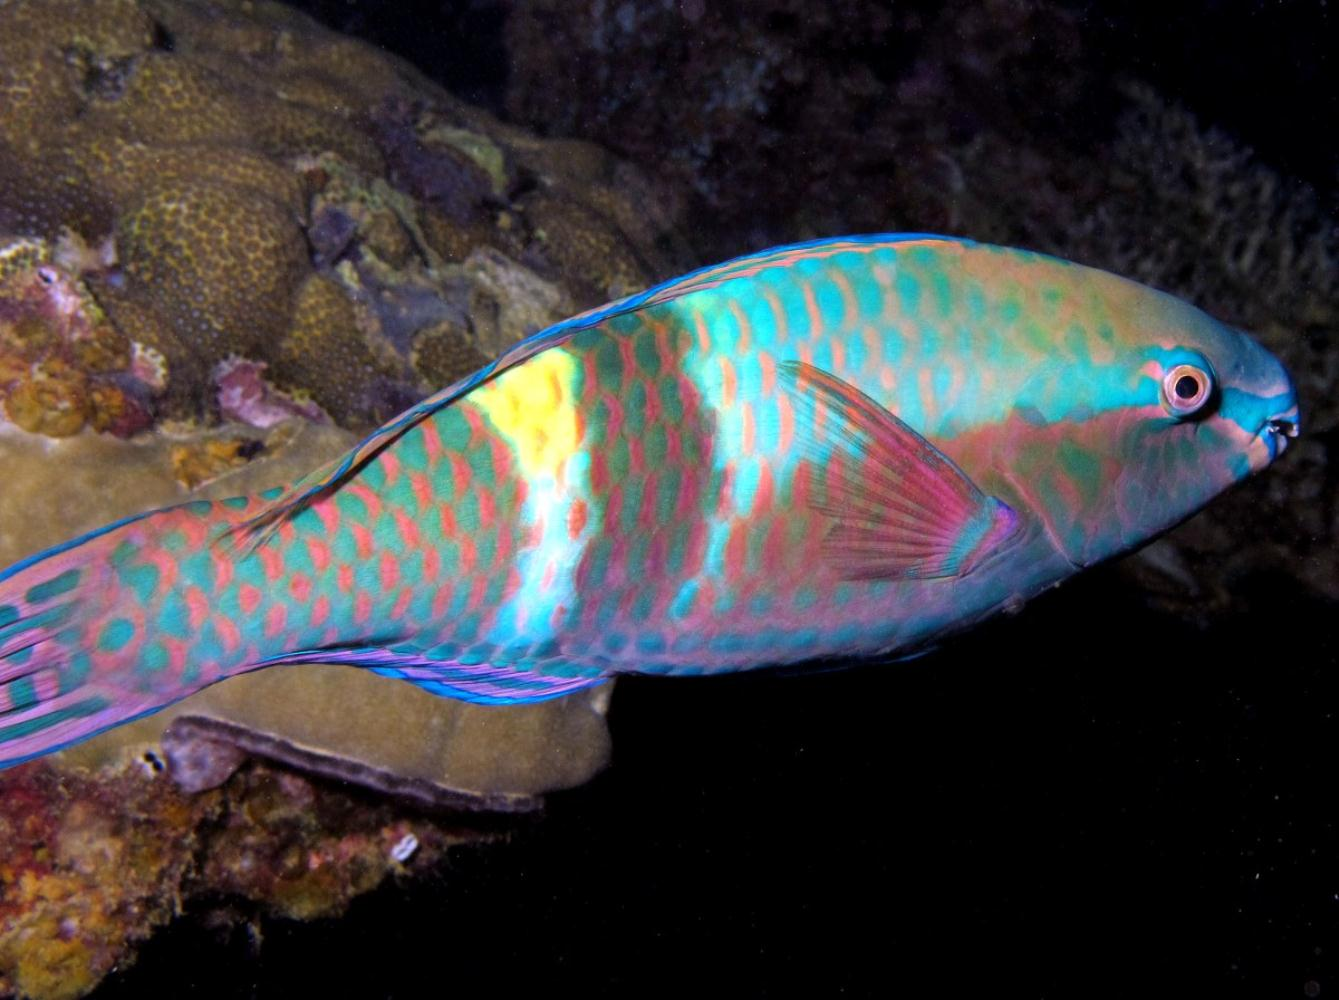 Yellowband parrotfish